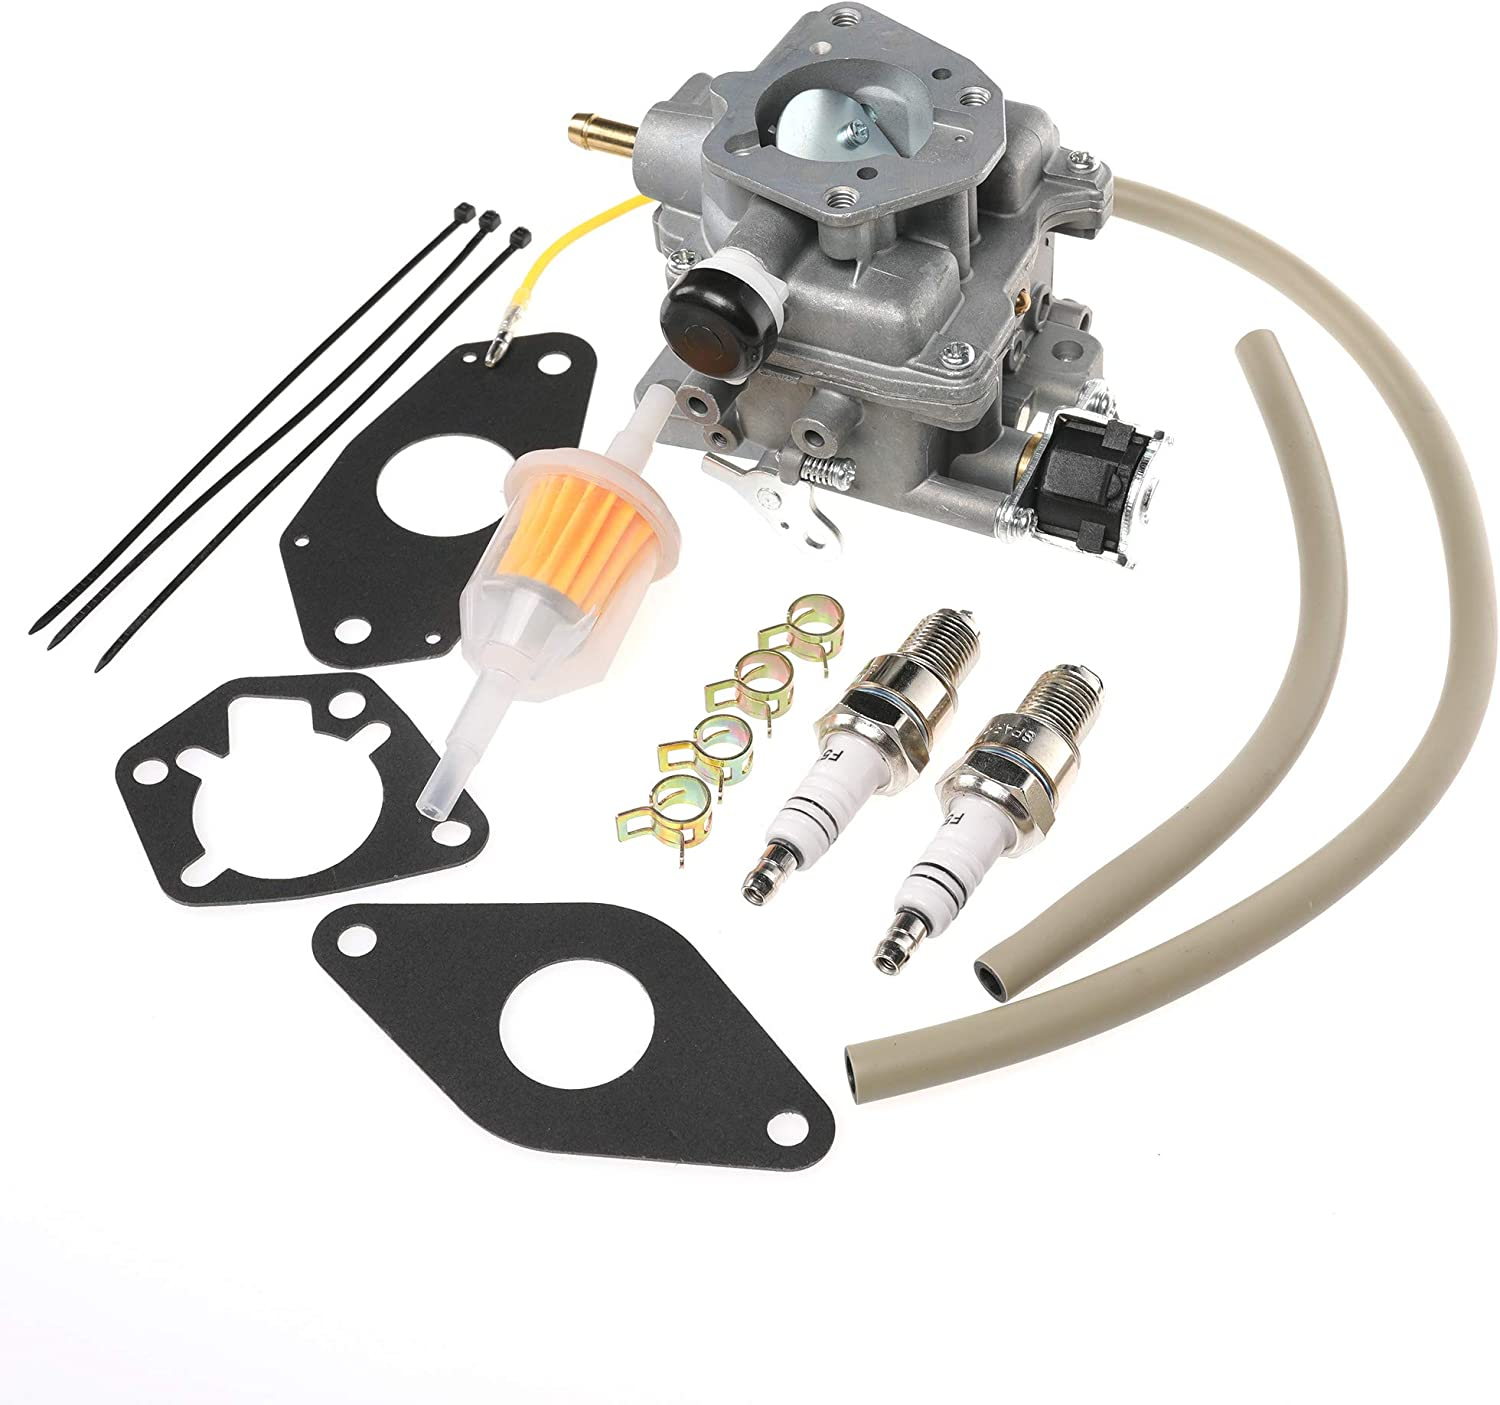 24 853 35S Carburetor With Gasket Replacement for Kohler CH18 CH18S CH22 CH620 Engine Model